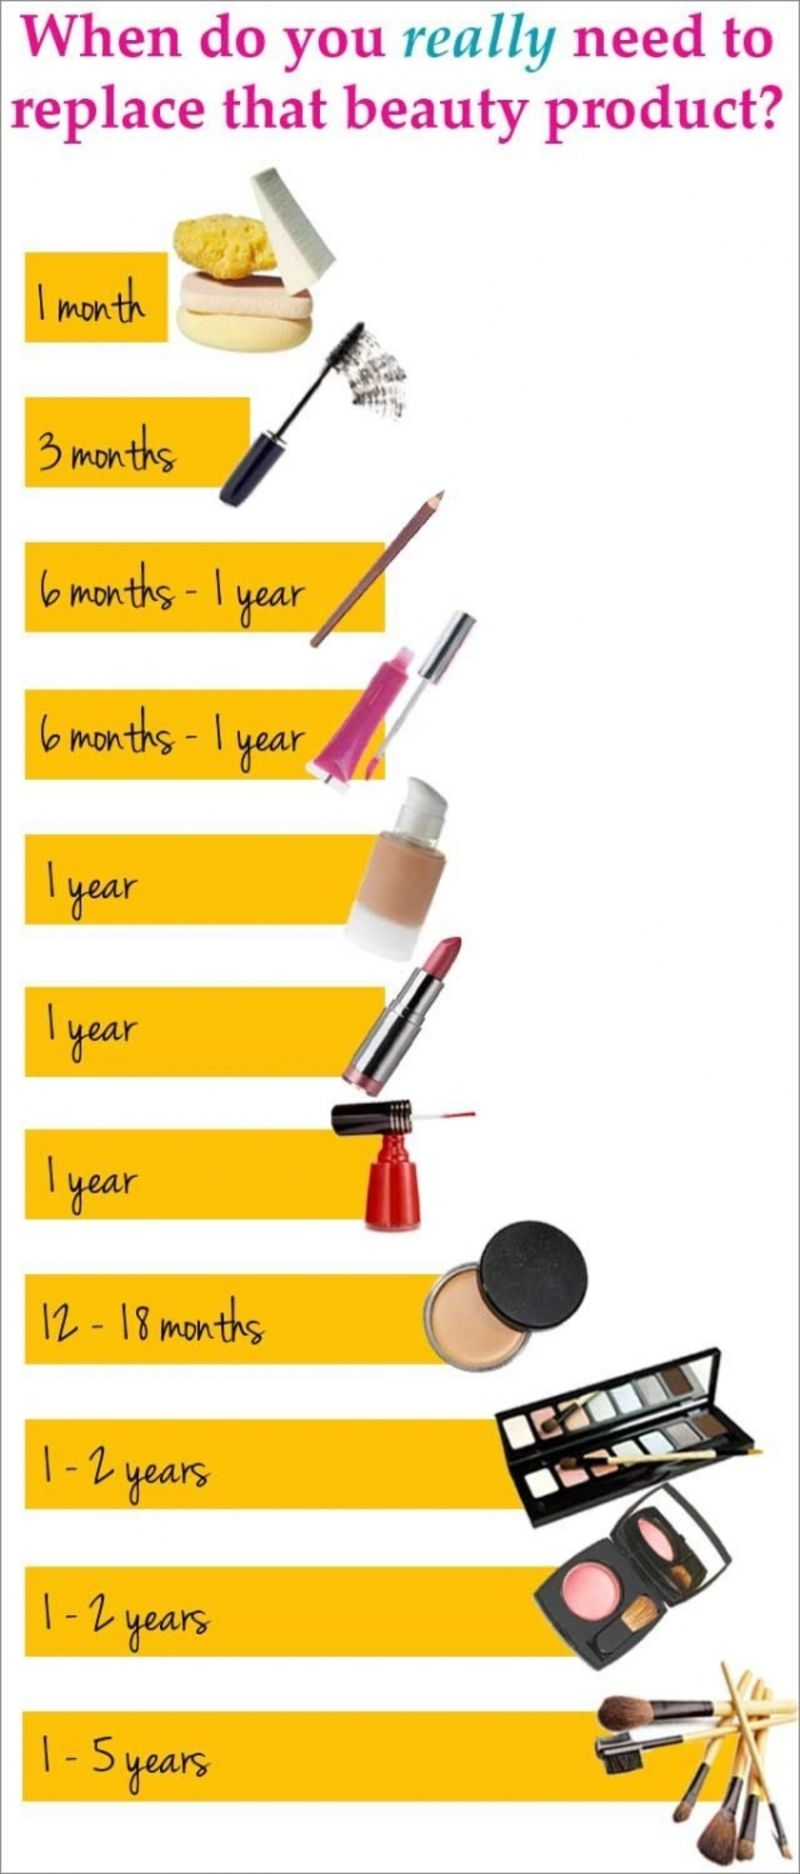 When Should You Replace Your Makeup